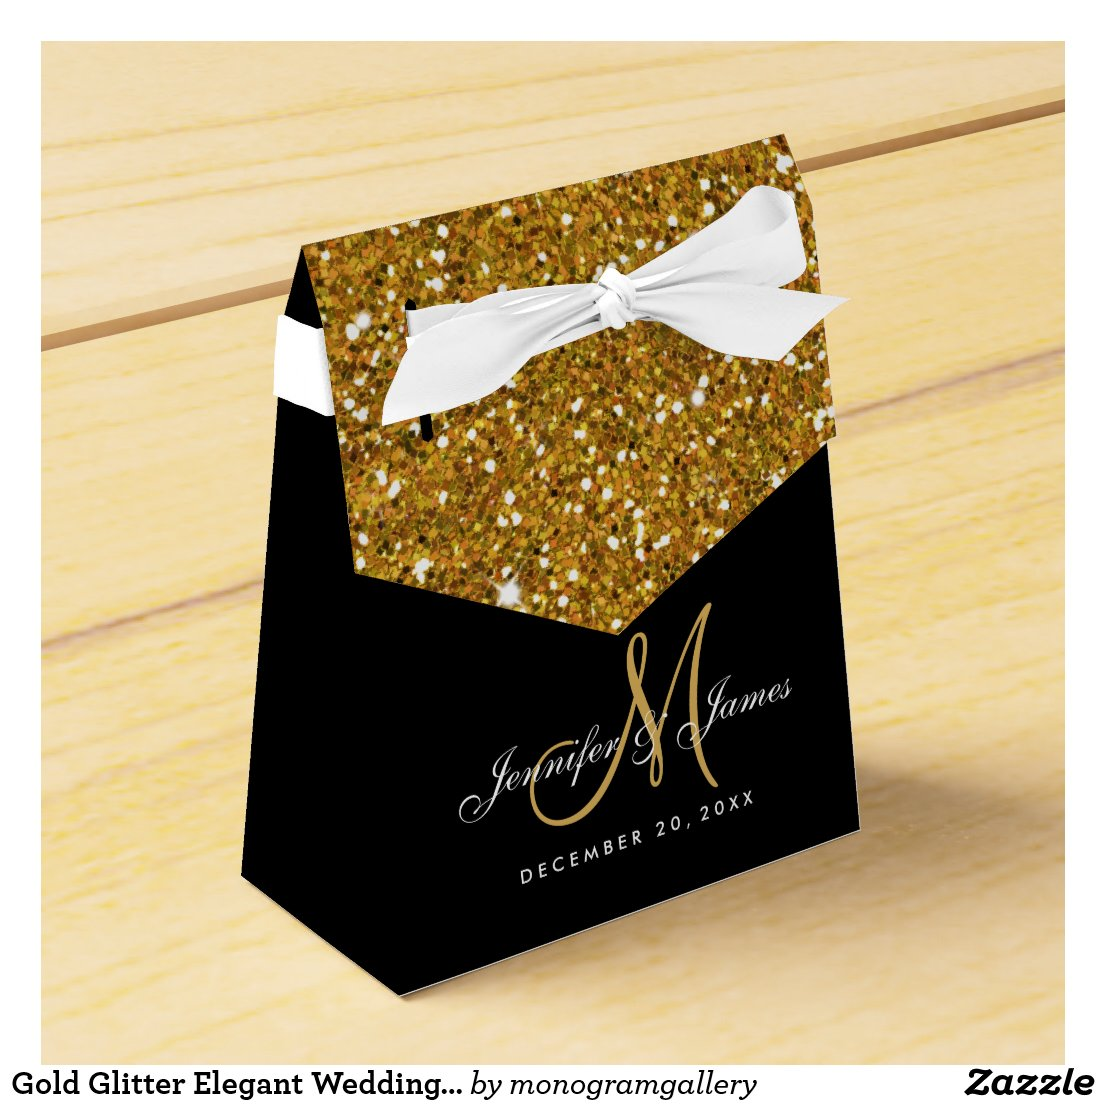 Gold Glitter Elegant Wedding Favour Box